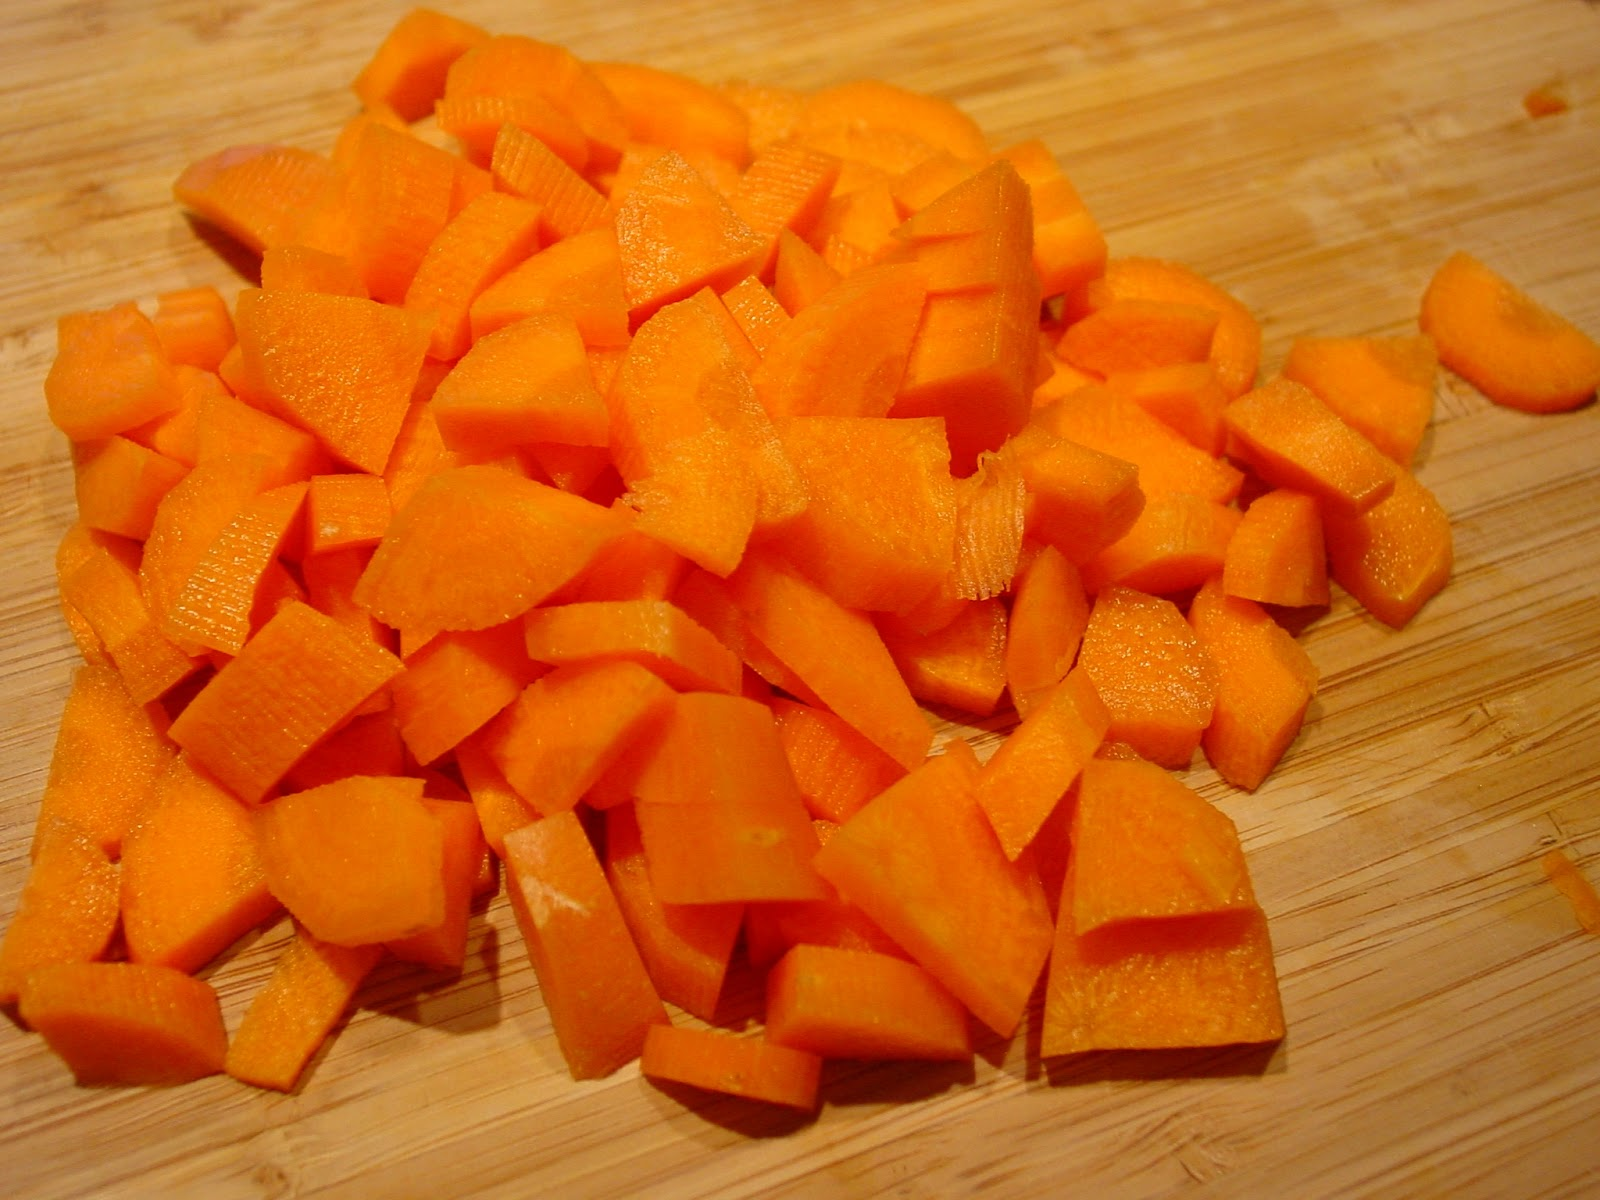 chopped carrots - photo #21